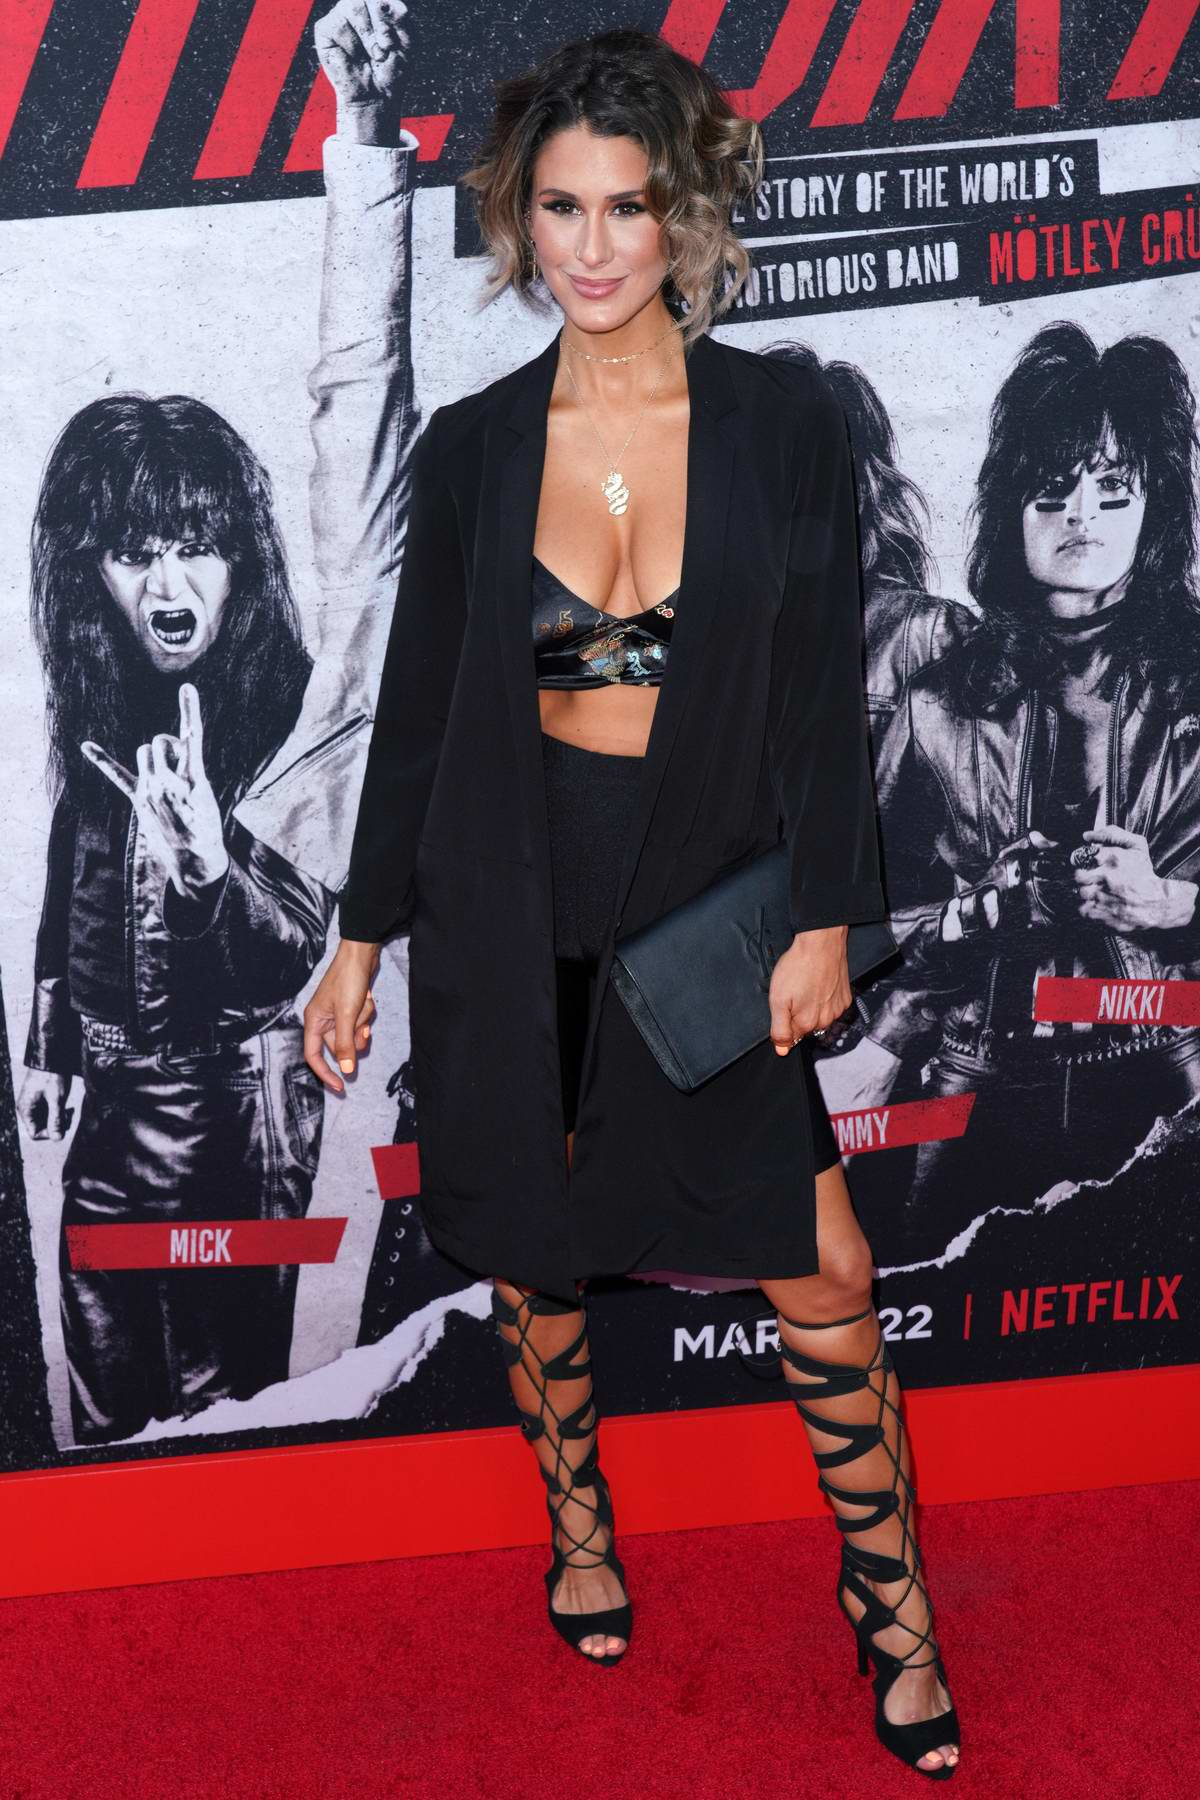 Brittany Furlan attends the World Premiere of 'The Dirt' at ArcLight Hollywood in Los Angeles